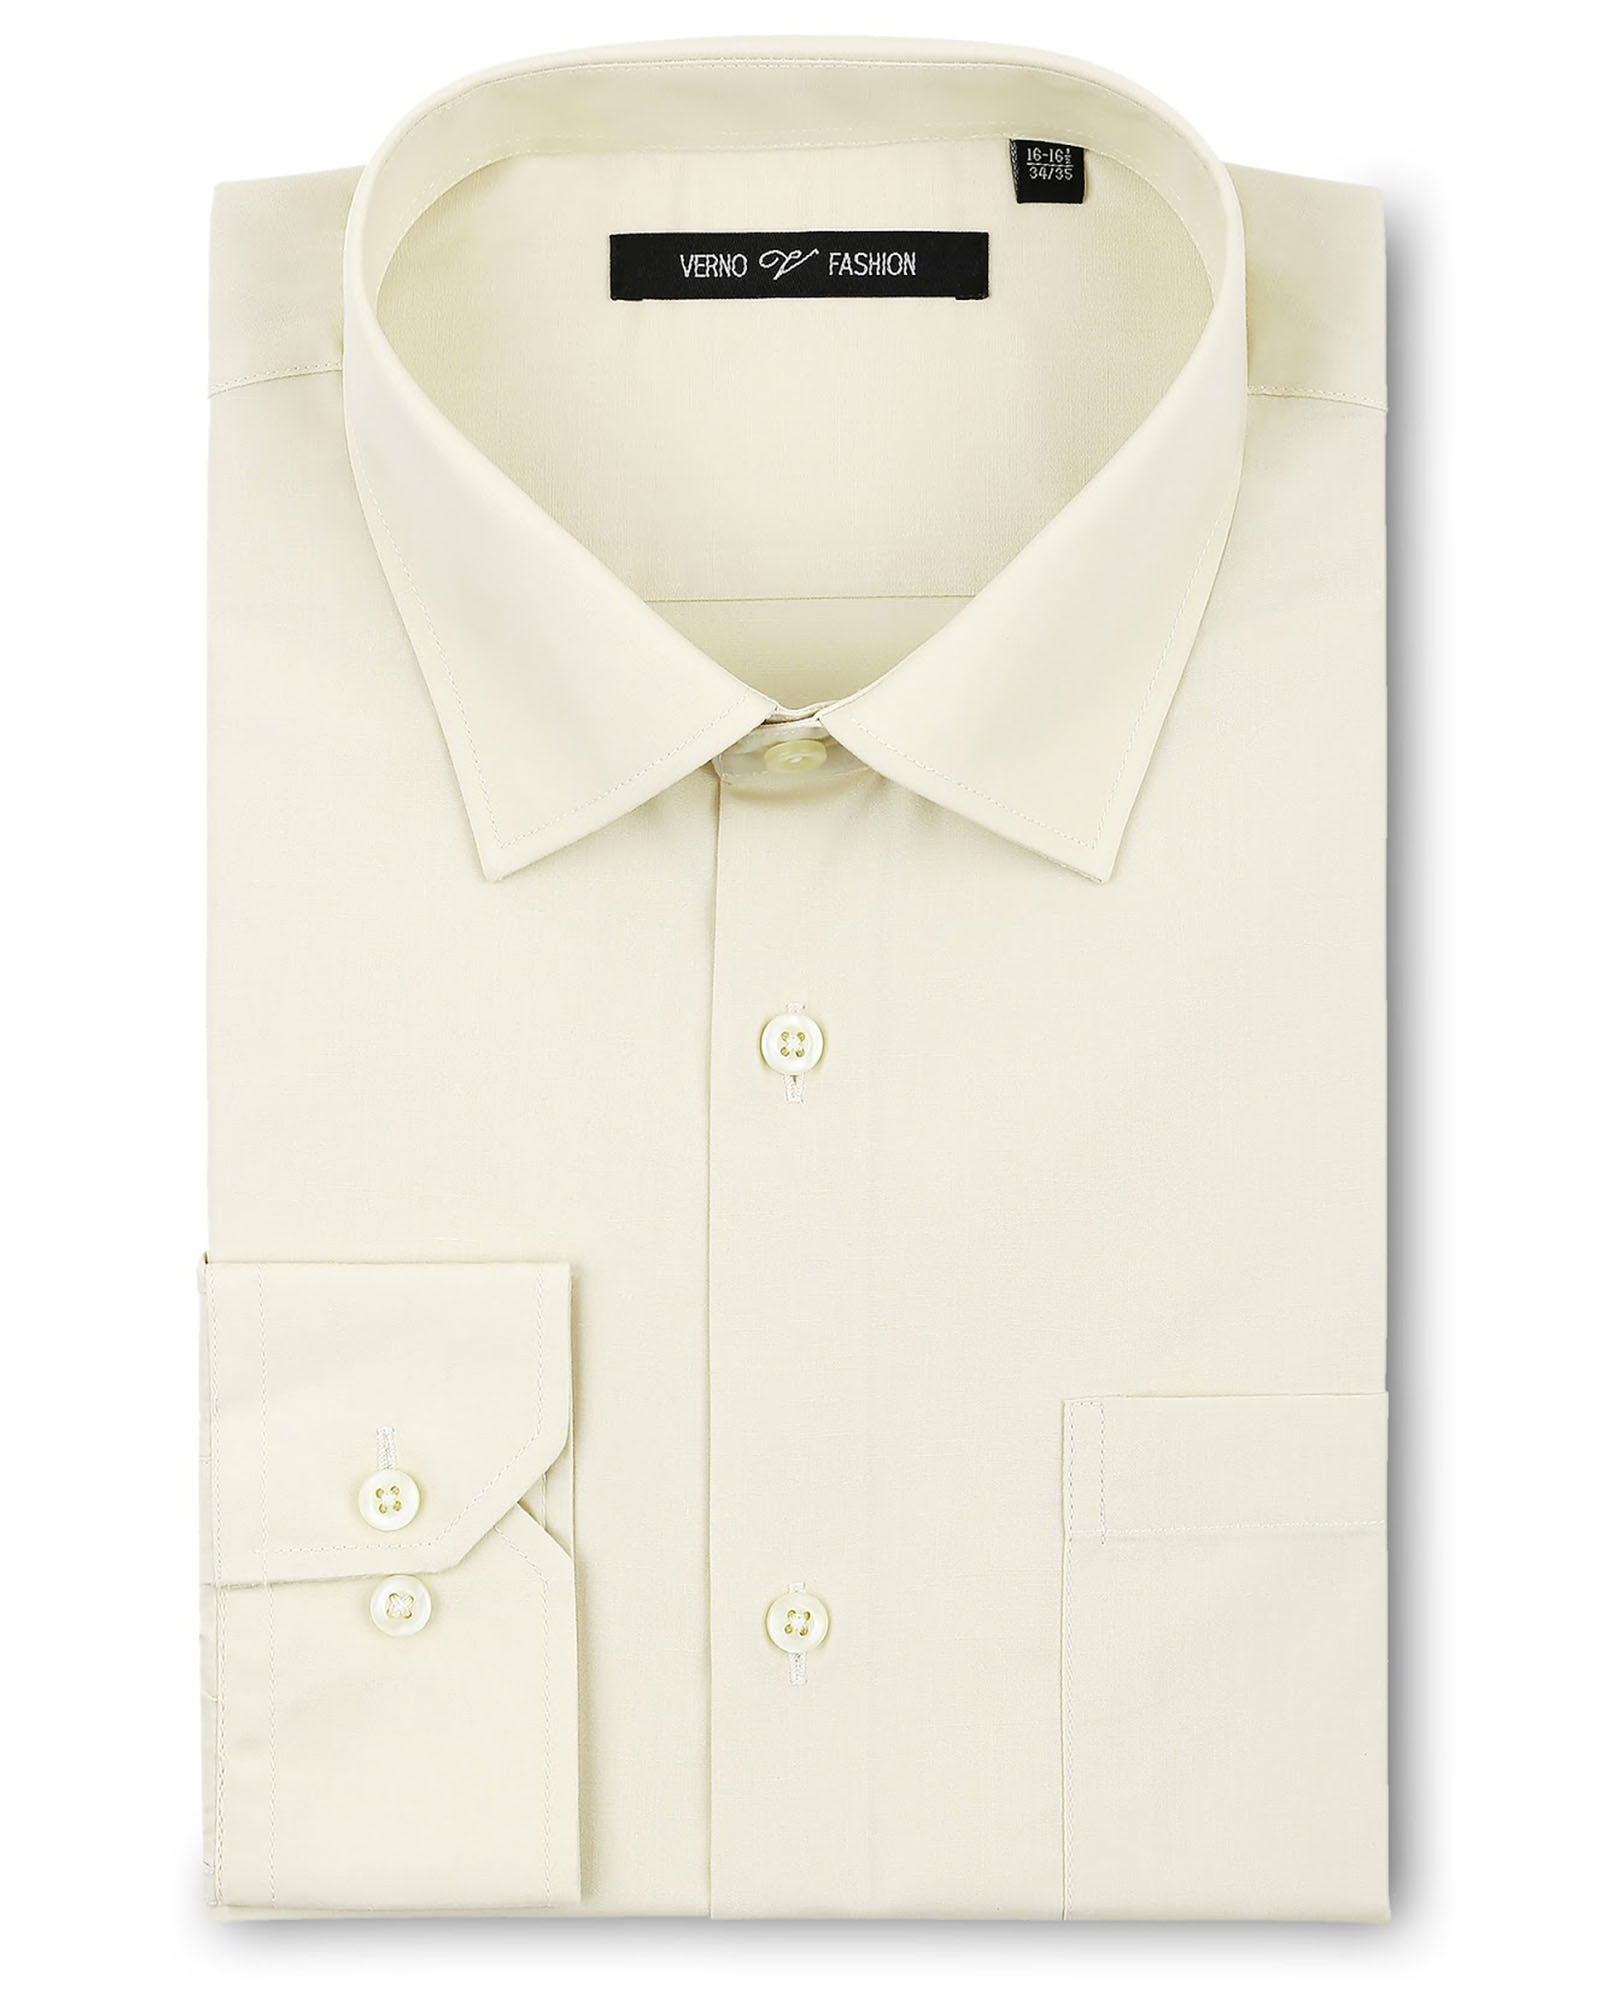 Verno Fashion Dress Shirt Polyester Cotton Blend in Ivory - Rainwater's